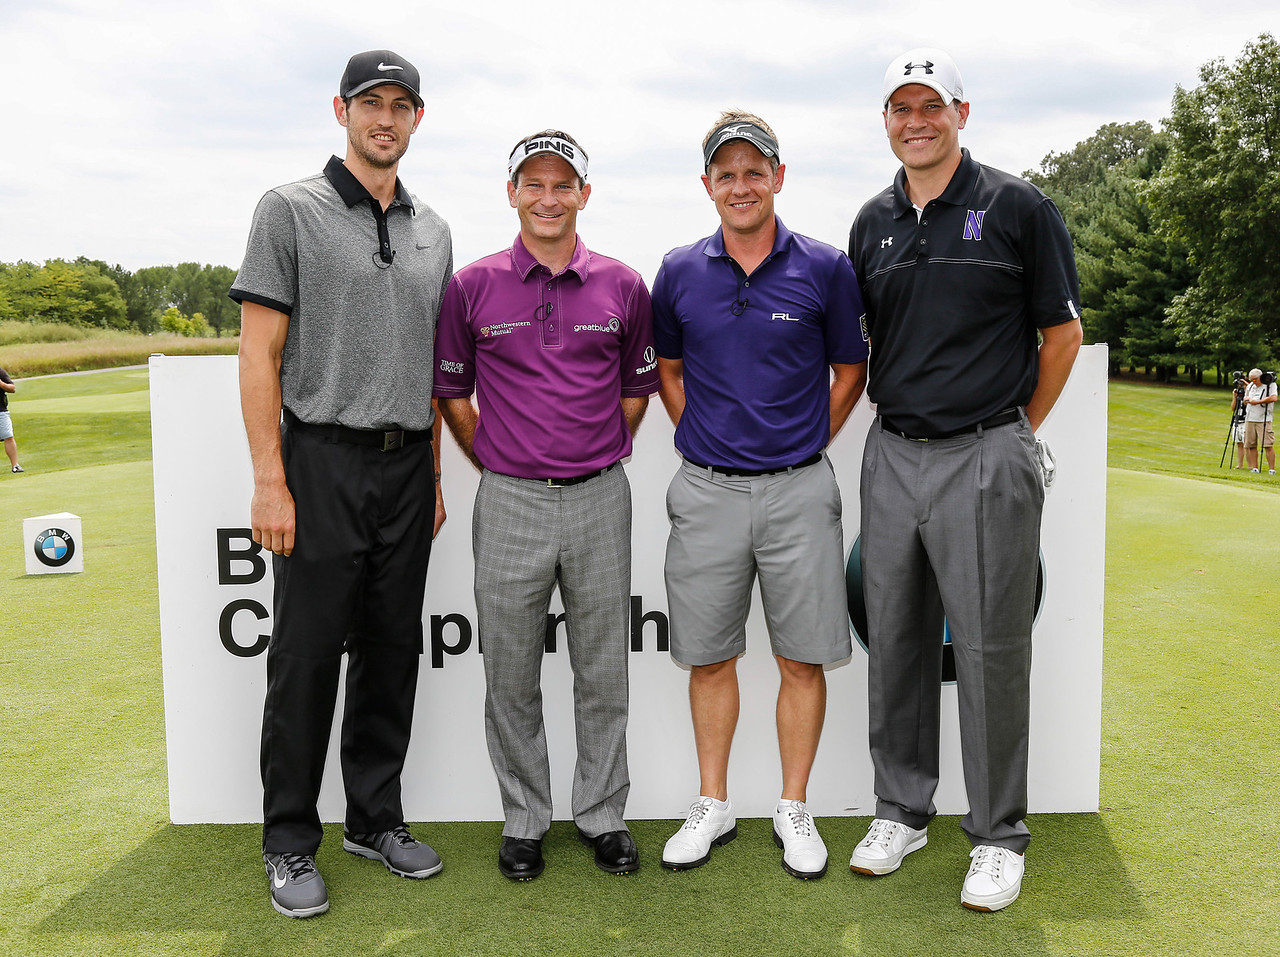 Kirk Hinrich, Mark Wilson, Luke Donald and Chris Collins take a second to pose for a photo before they teed off in the 2013 BMW Championship Exhibition at Conway Farms Golf Club on Monday, Aug. 12. The nine-hole exhibition raised $45,000 for the Evans Scholars Foundation, the sole beneficiary of the BMW Championship. The BMW Championship, the third of four events in the PGA TOUR's FedExCup Playoffs, will be held the week of Sept. 9-15 at Conway Farms. WGA Photo/Charles Cherney)